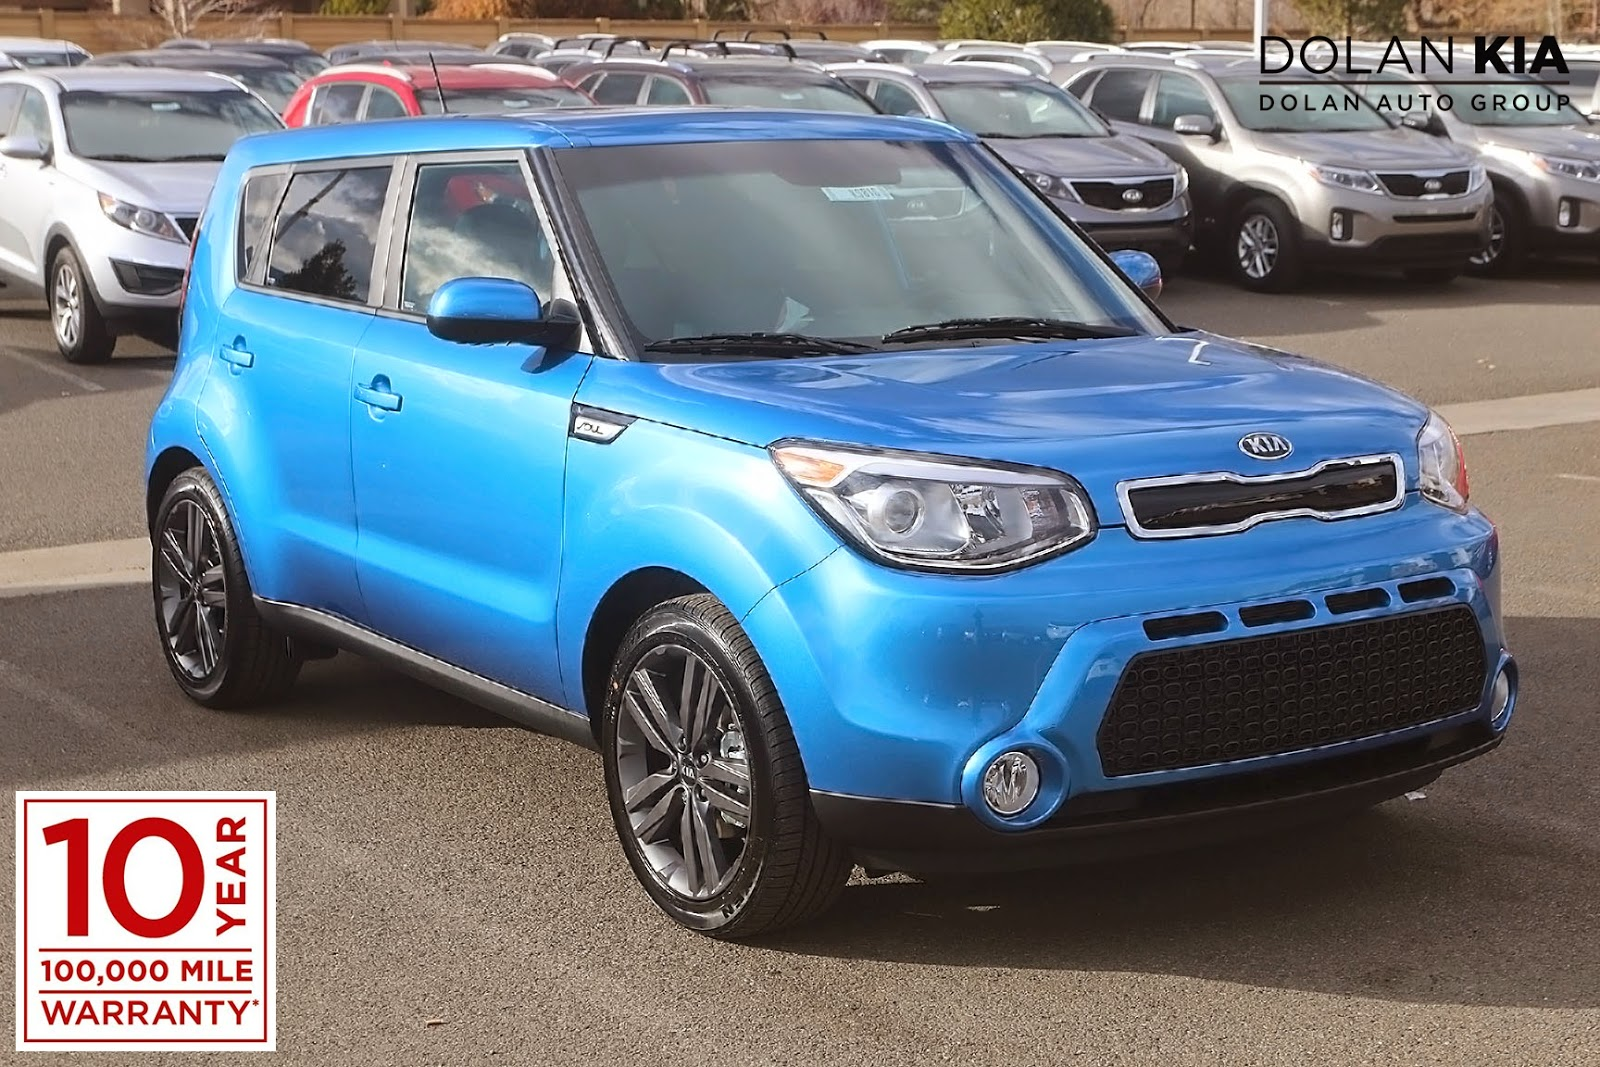 2017 Kia Soul Caribbean Blue Special Edition High Resolution Pics Tha